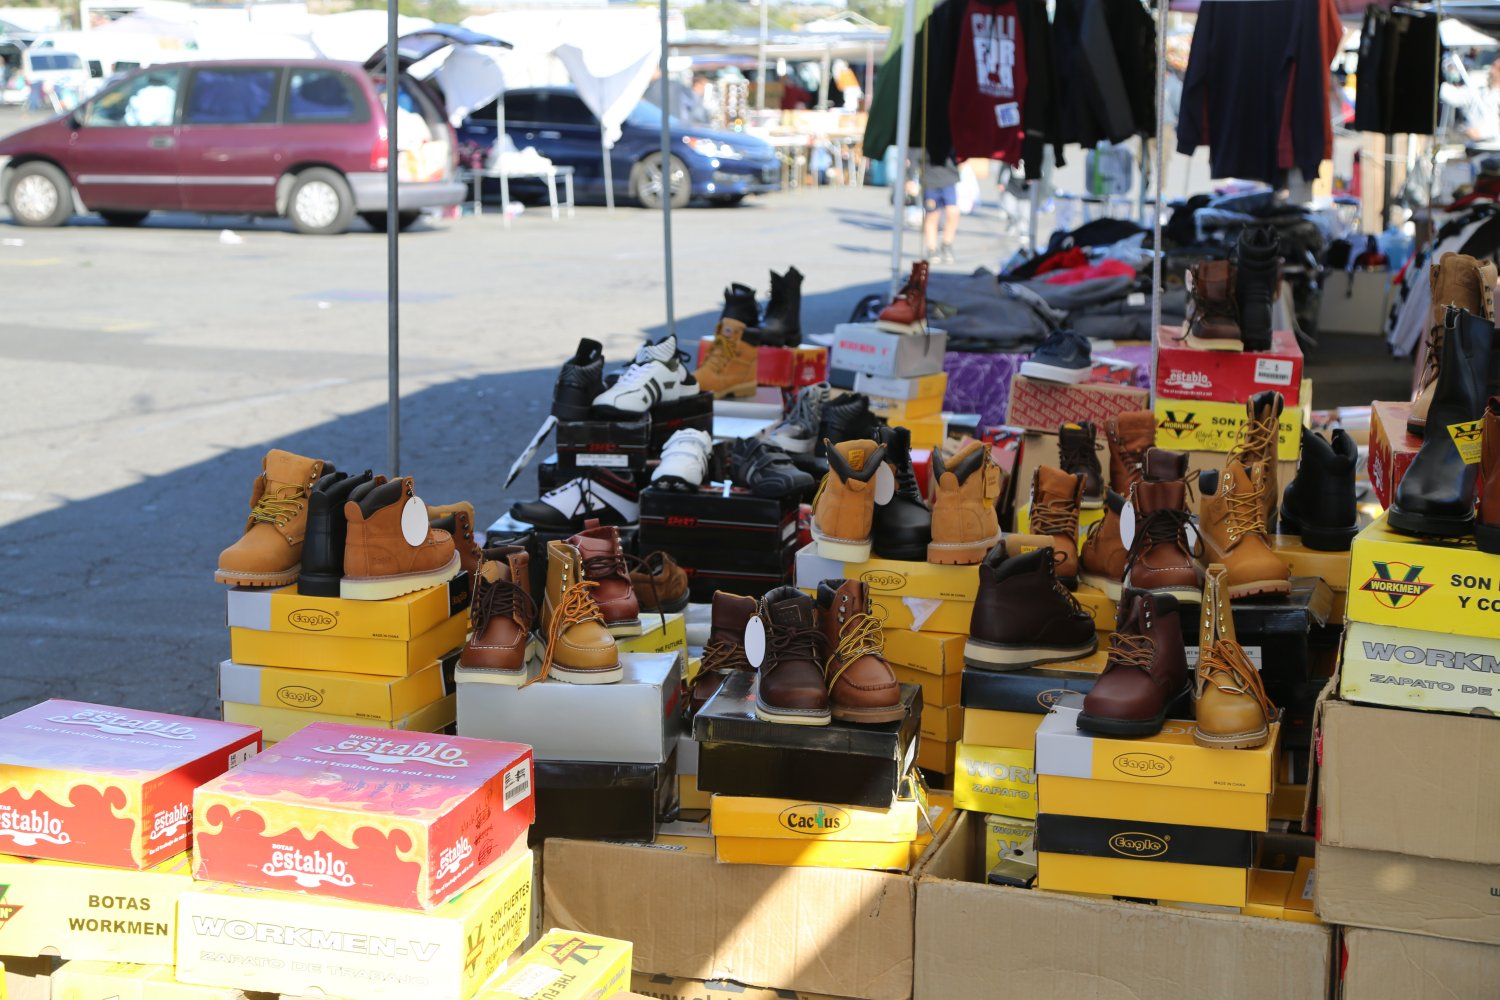 La County College Swap Meet Is Held Every Saay And Sunday From 9 330pm In The Open Air Parking Lot At Los Angeles 4133 Marathon St